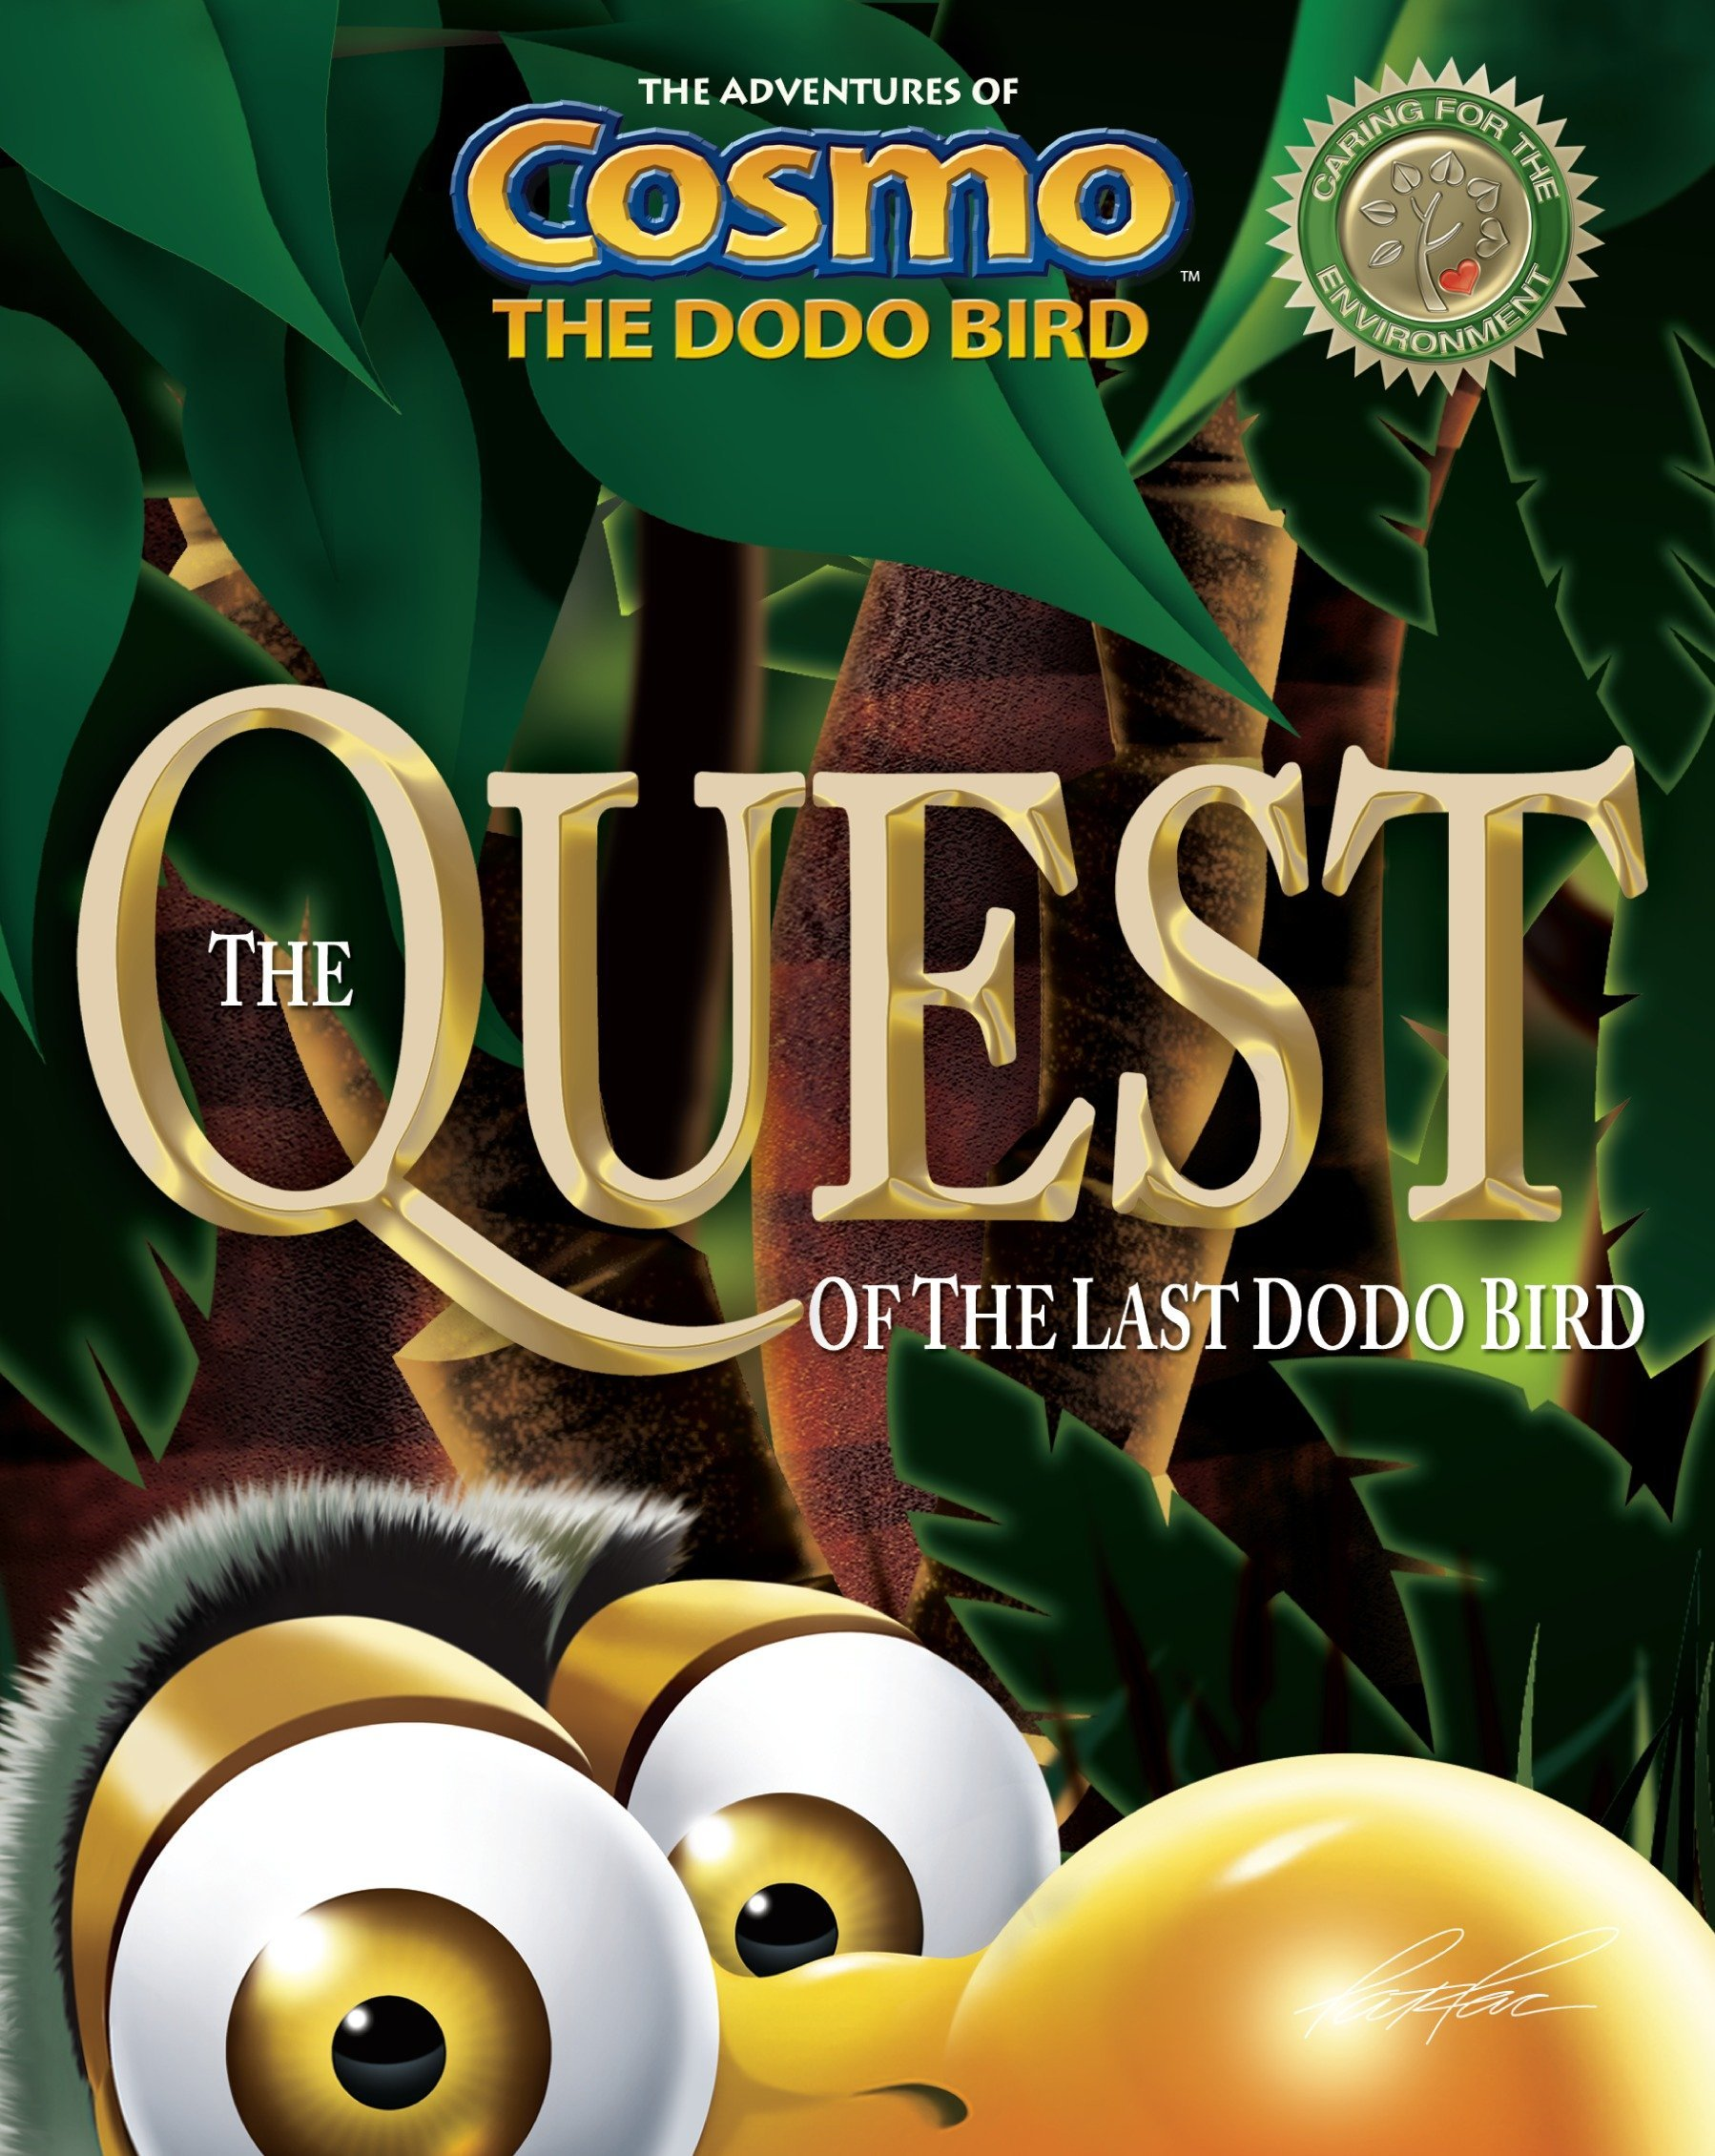 The Quest of the Last Dodo Bird: Patrice Racine